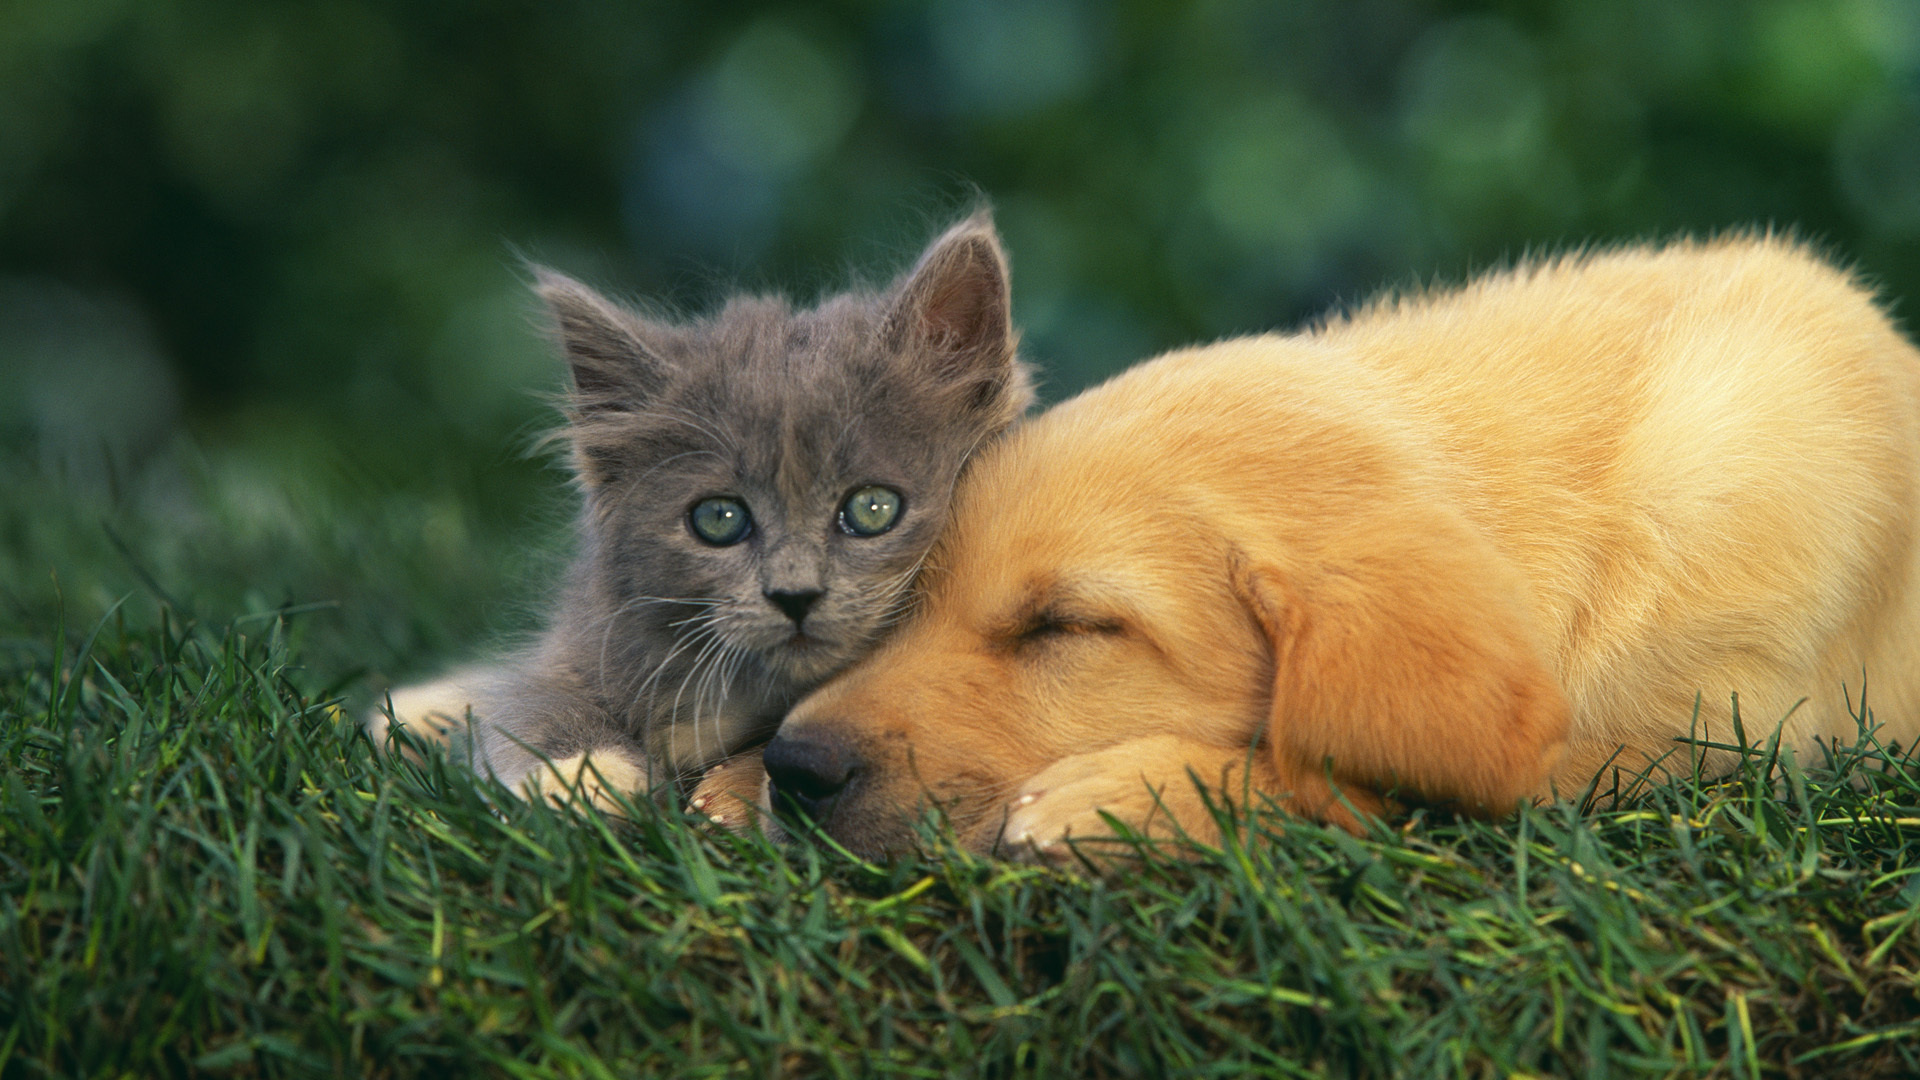 Cat amp Dog Wallpapers Pictures Images